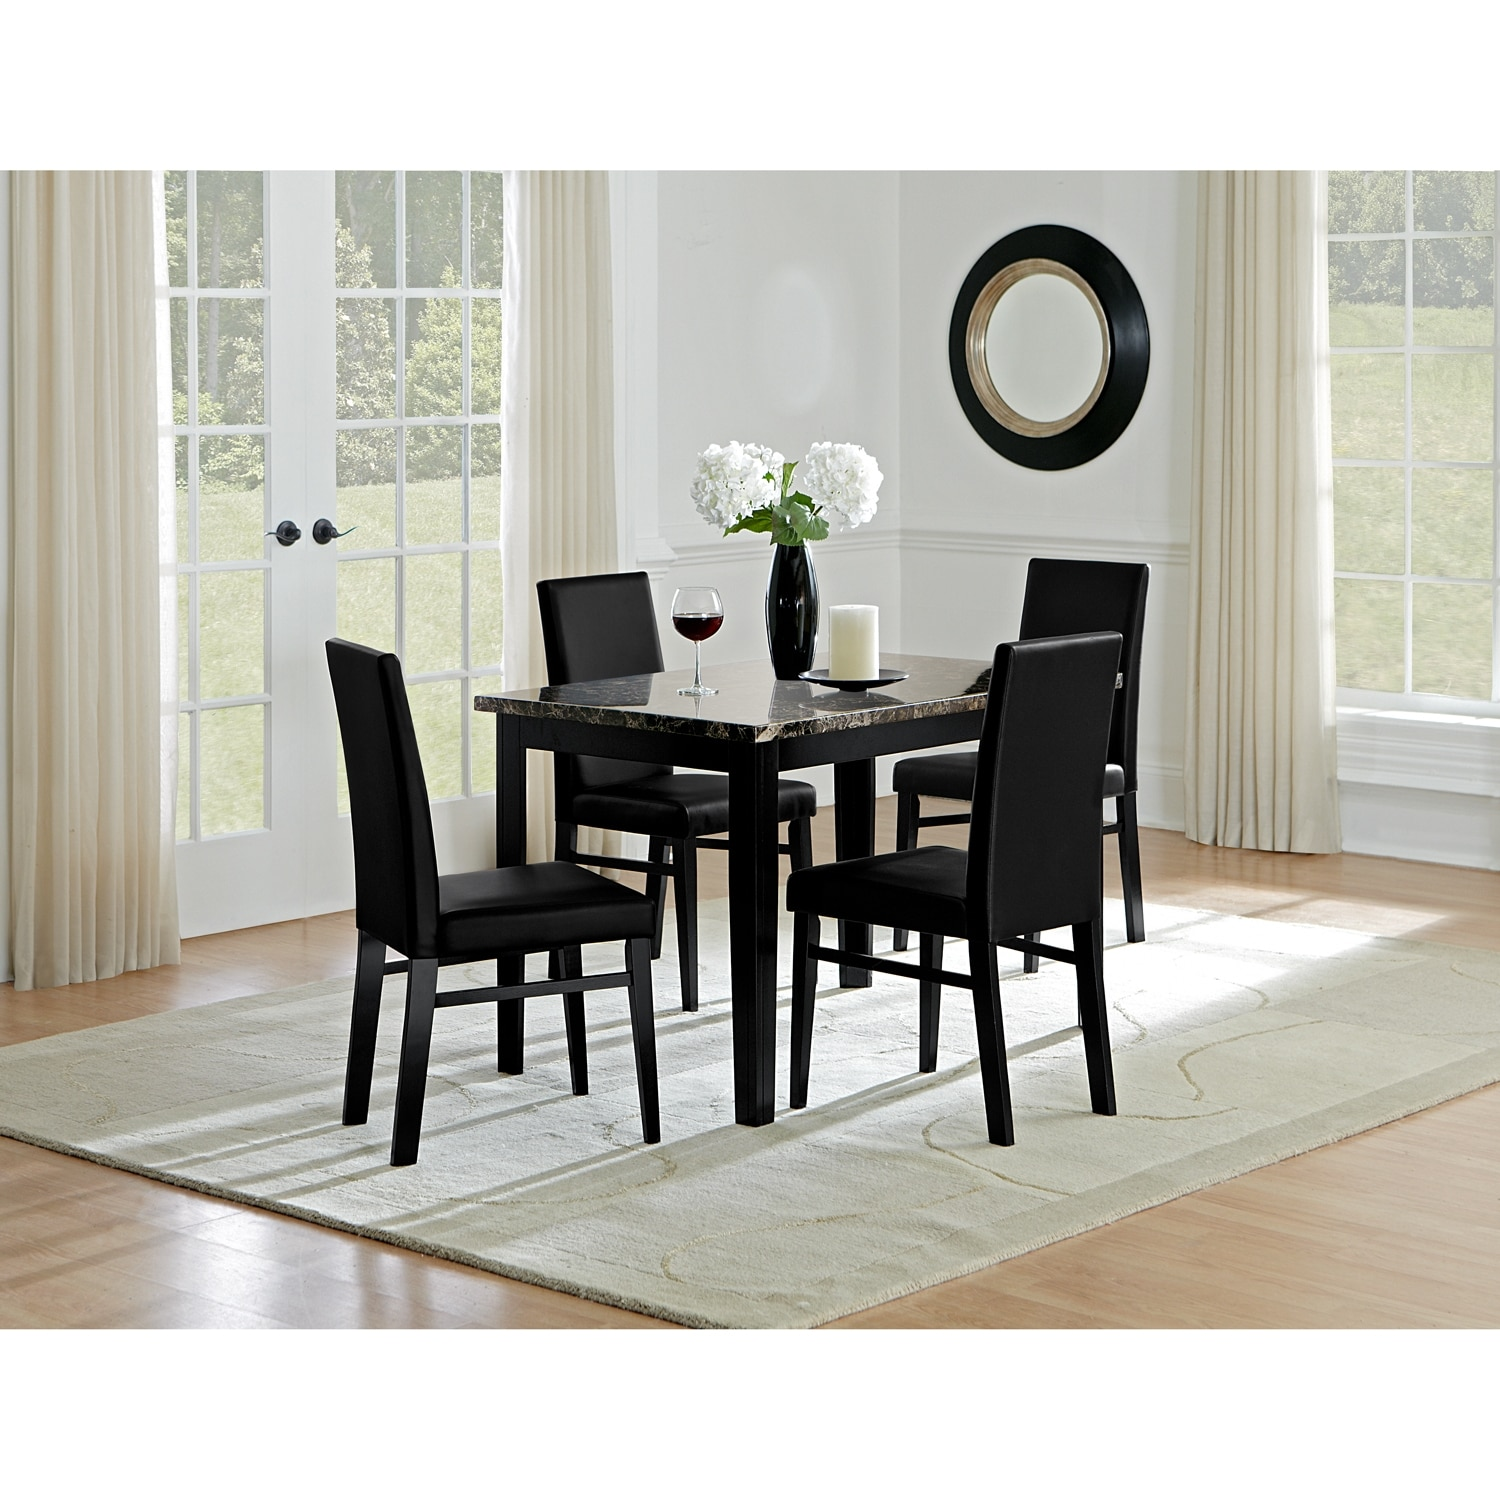 4 Chairs In Dining Room: Shadow Table And 4 Chairs - Black